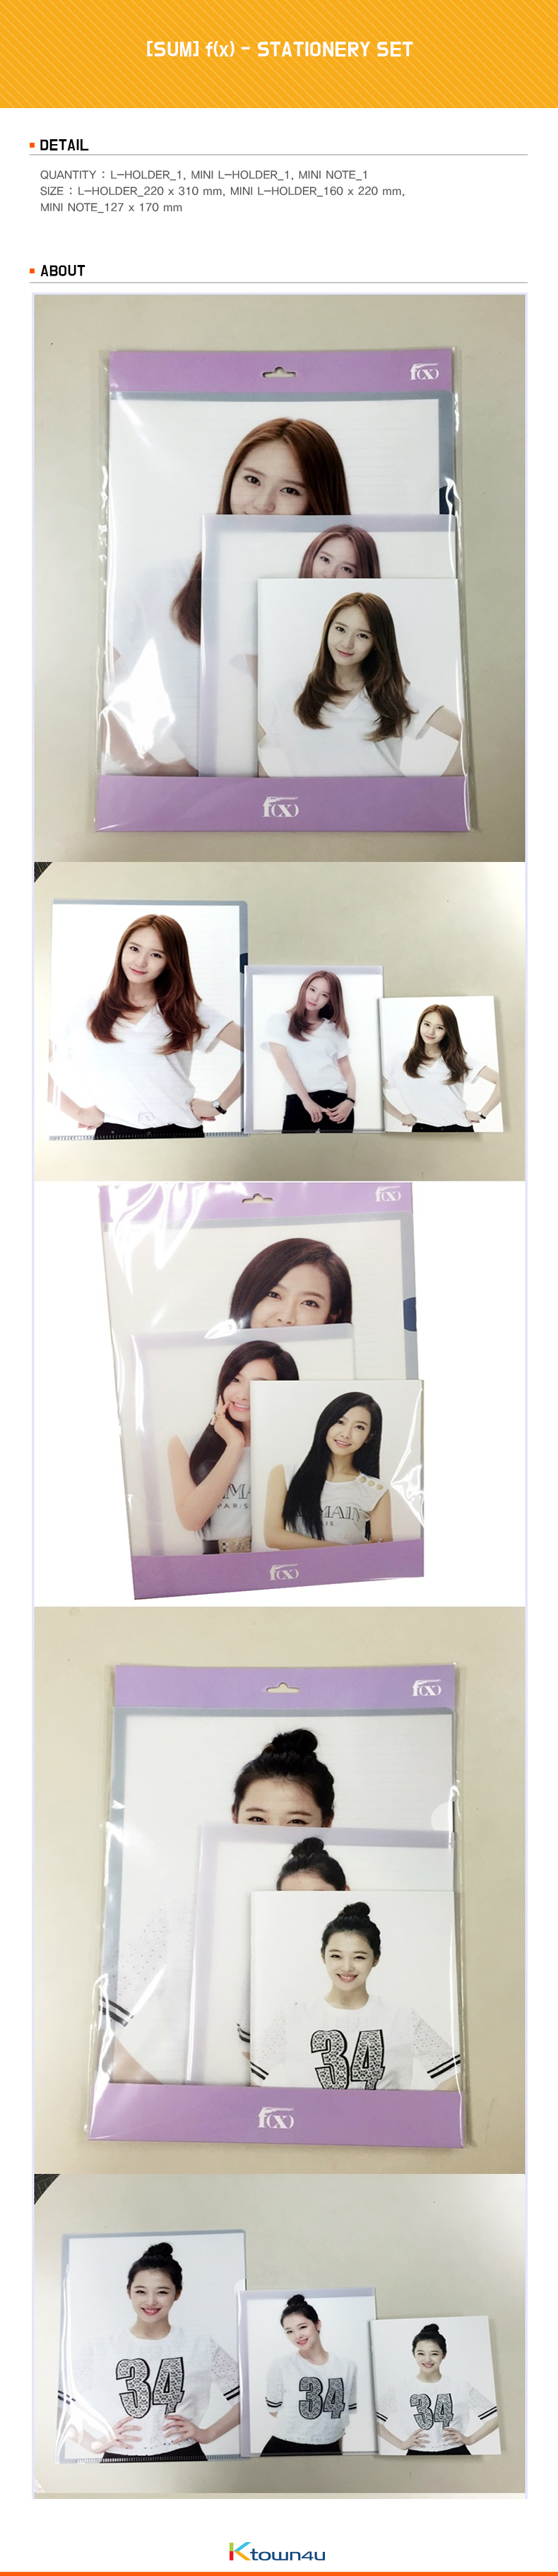 [SUM] f(x) - STATIONERY SET